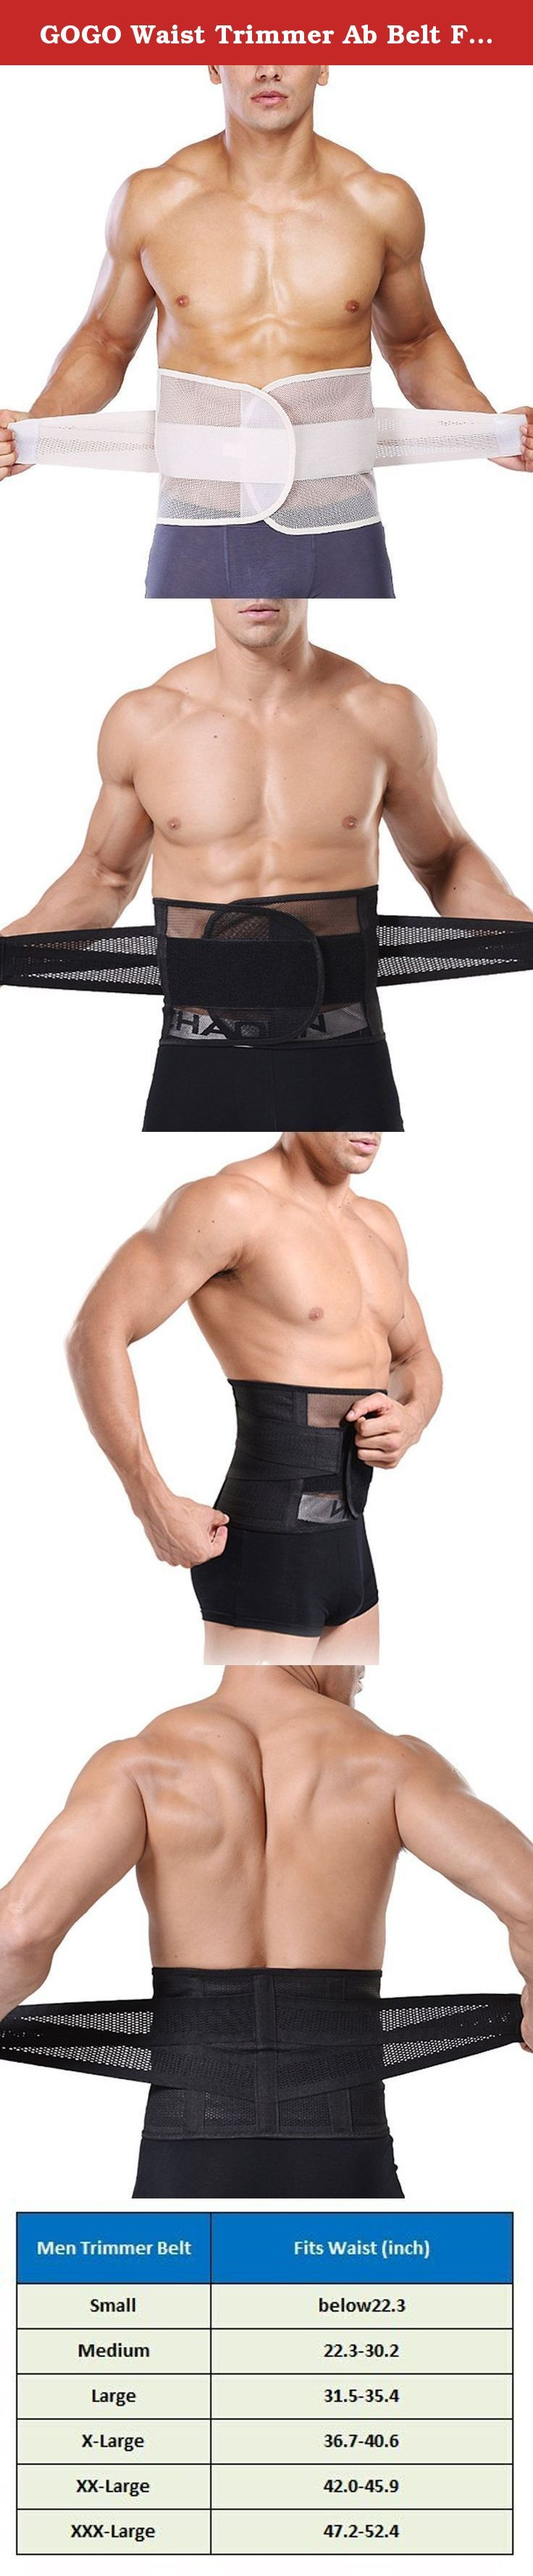 """GOGO Waist Trimmer Ab Belt For Women & Men, Abdominal Trainers - Black,M. This breathable waist belt is professionally engineered to retain your abdominal temperature and excess sweat when you exercises. The trimmer belt is made of the high elasticity mesh. Our size is not standard US Size. Please check our SIZE CHART in the description or image to get the perfect fit. Kindly suggest you to order two sizes up than what you usually wear. Small -- Waist Relaxed below 22.3""""; Medium -- Waist..."""